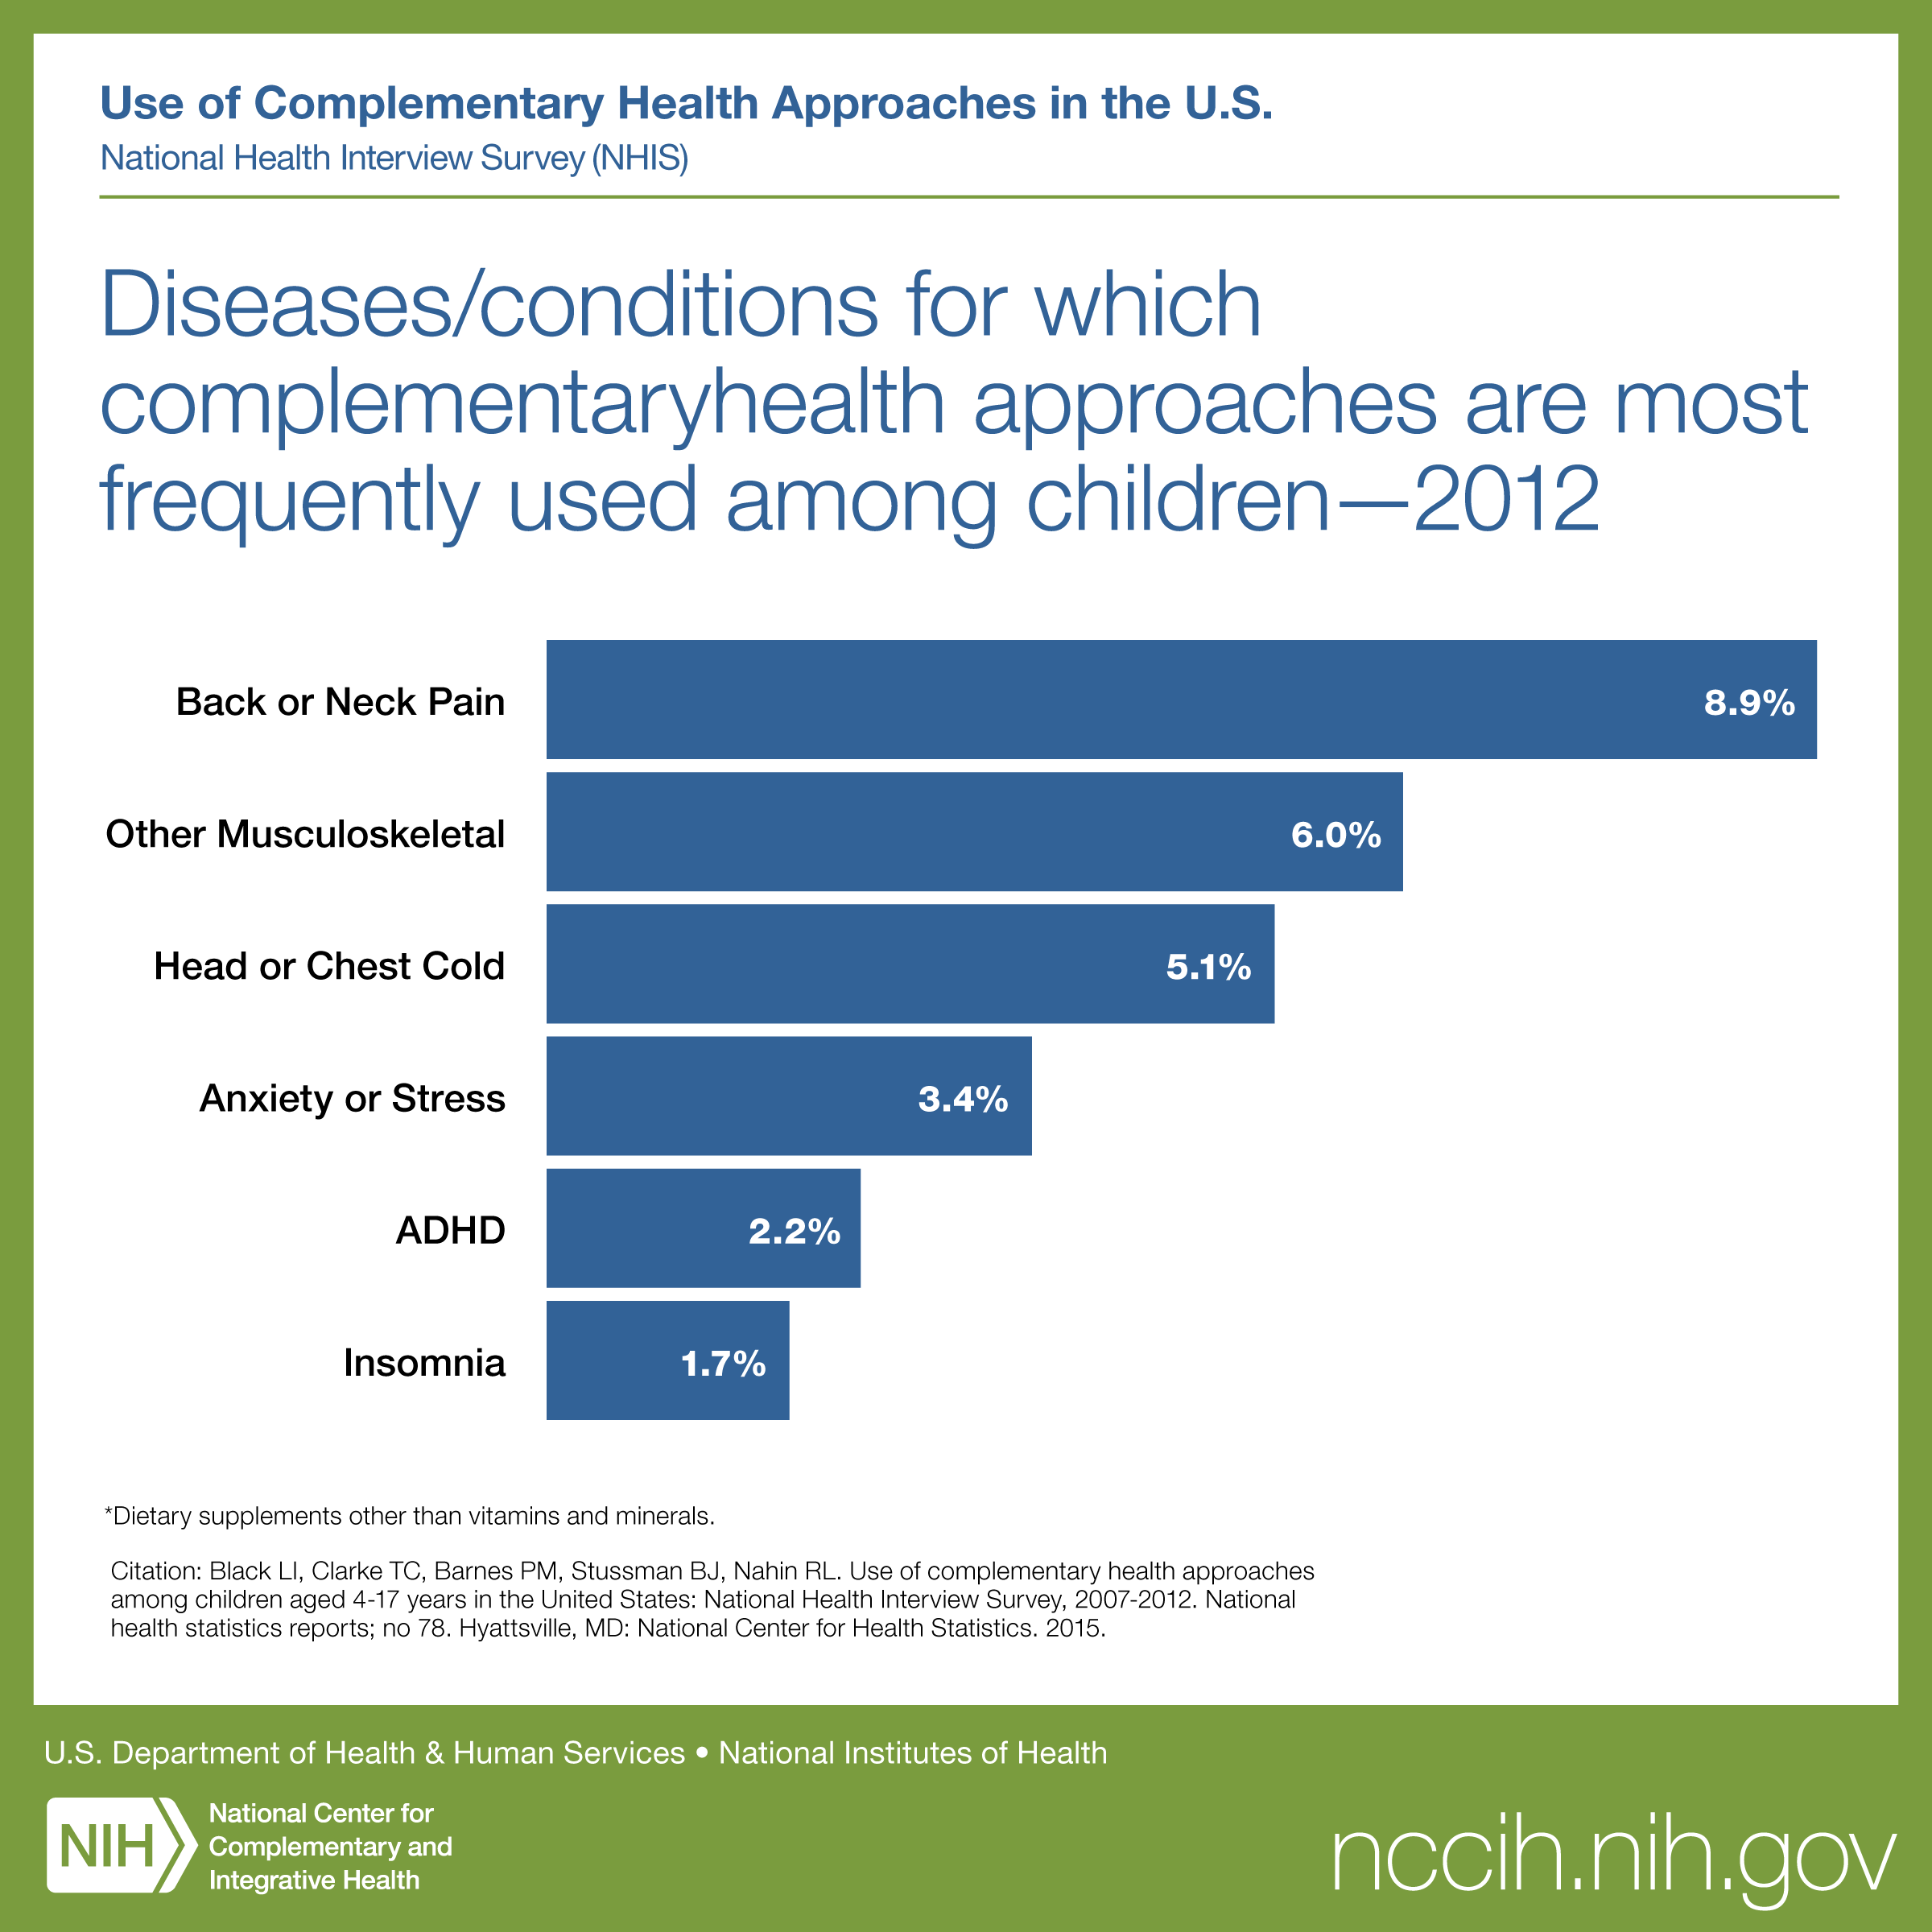 Diseases/Conditions for Which Complementary Health Approaches Are Most Frequently Used Among Children-2012: Back or neck pain, other musculoskeletal, head or chest cold, anxiety or stress, ADHD, insomnia